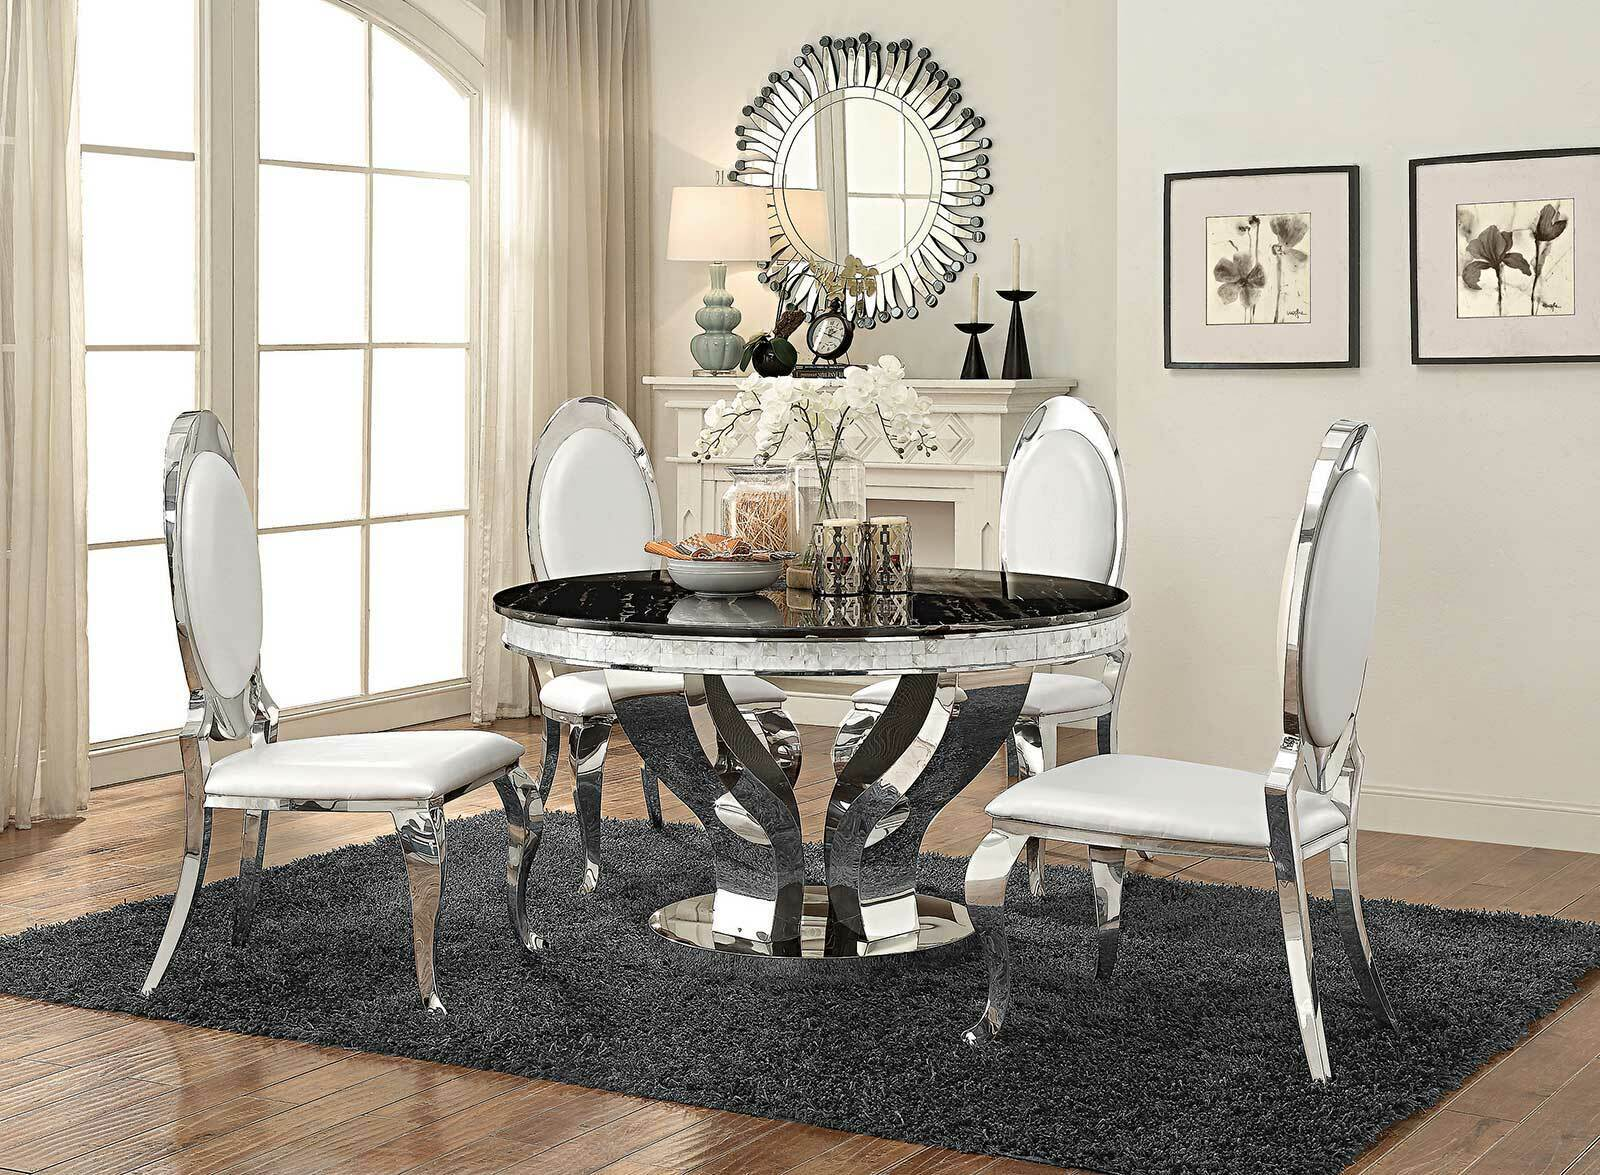 Modern Dining Room Furniture 5 Piece Round Mirror Table White Chairs Set Ic73 For Sale Online